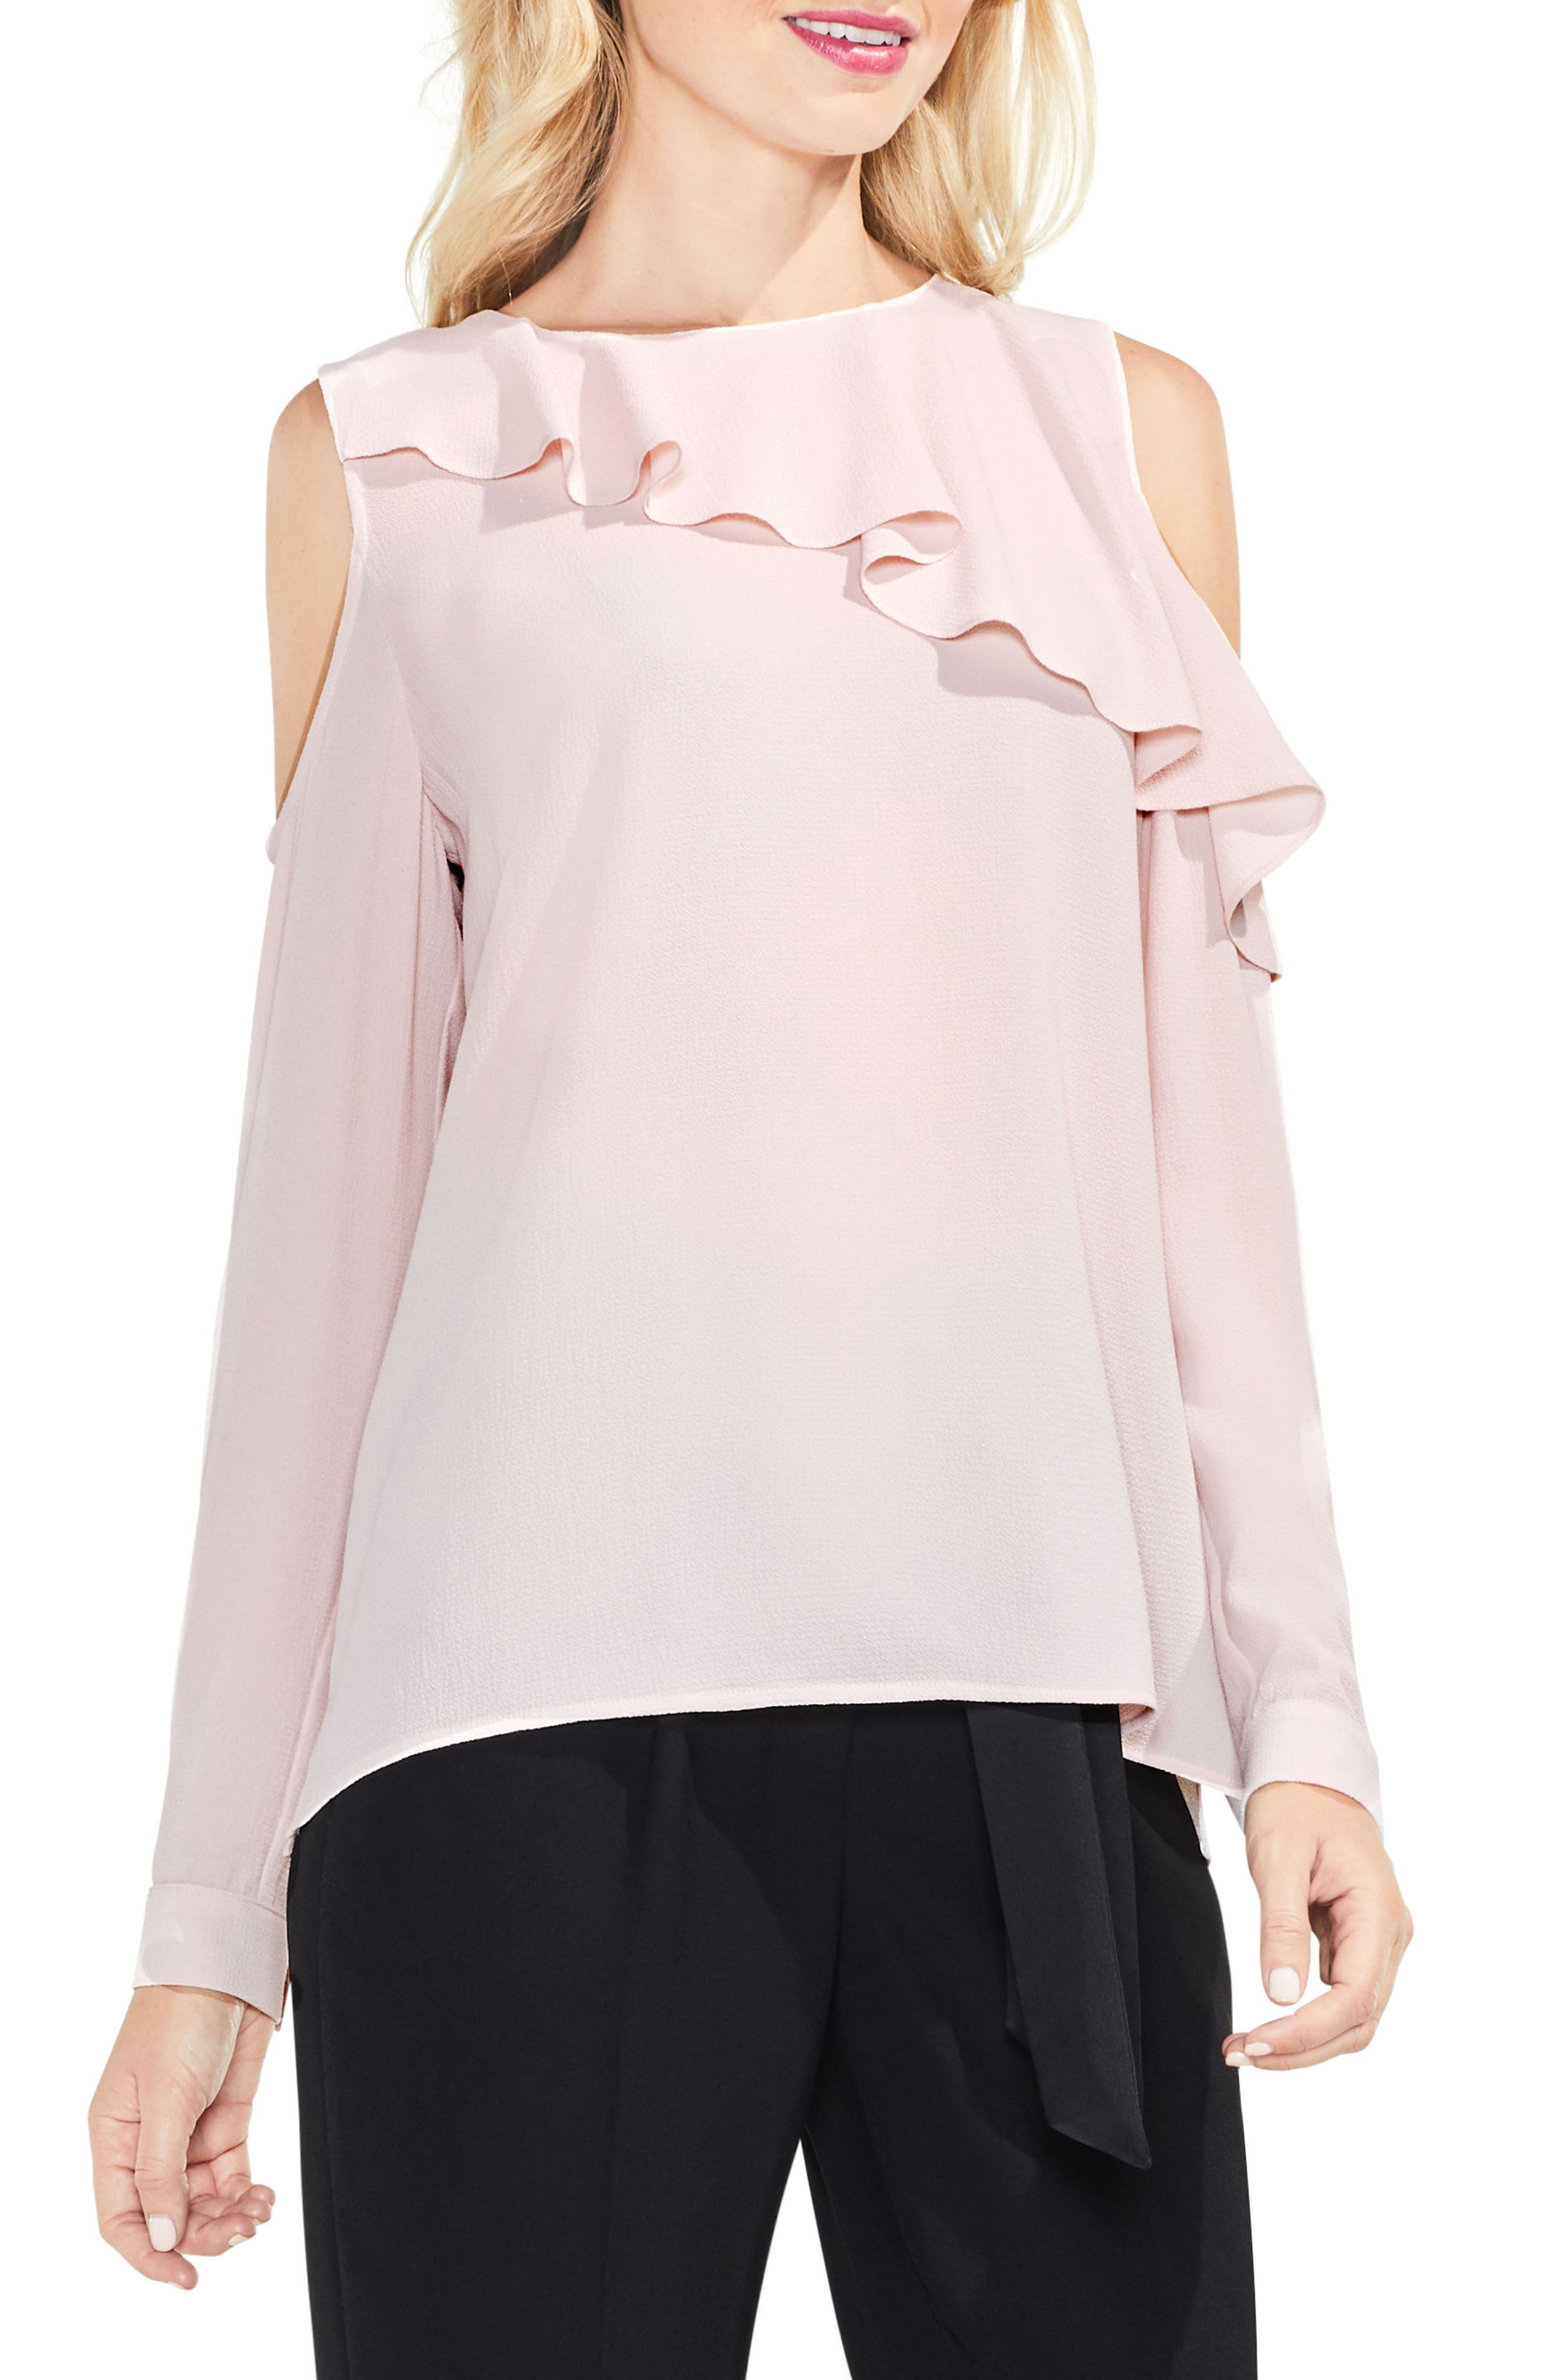 Main Image - Vince Camuto Ruffle Cold Shoulder Top (Regular & Petite)